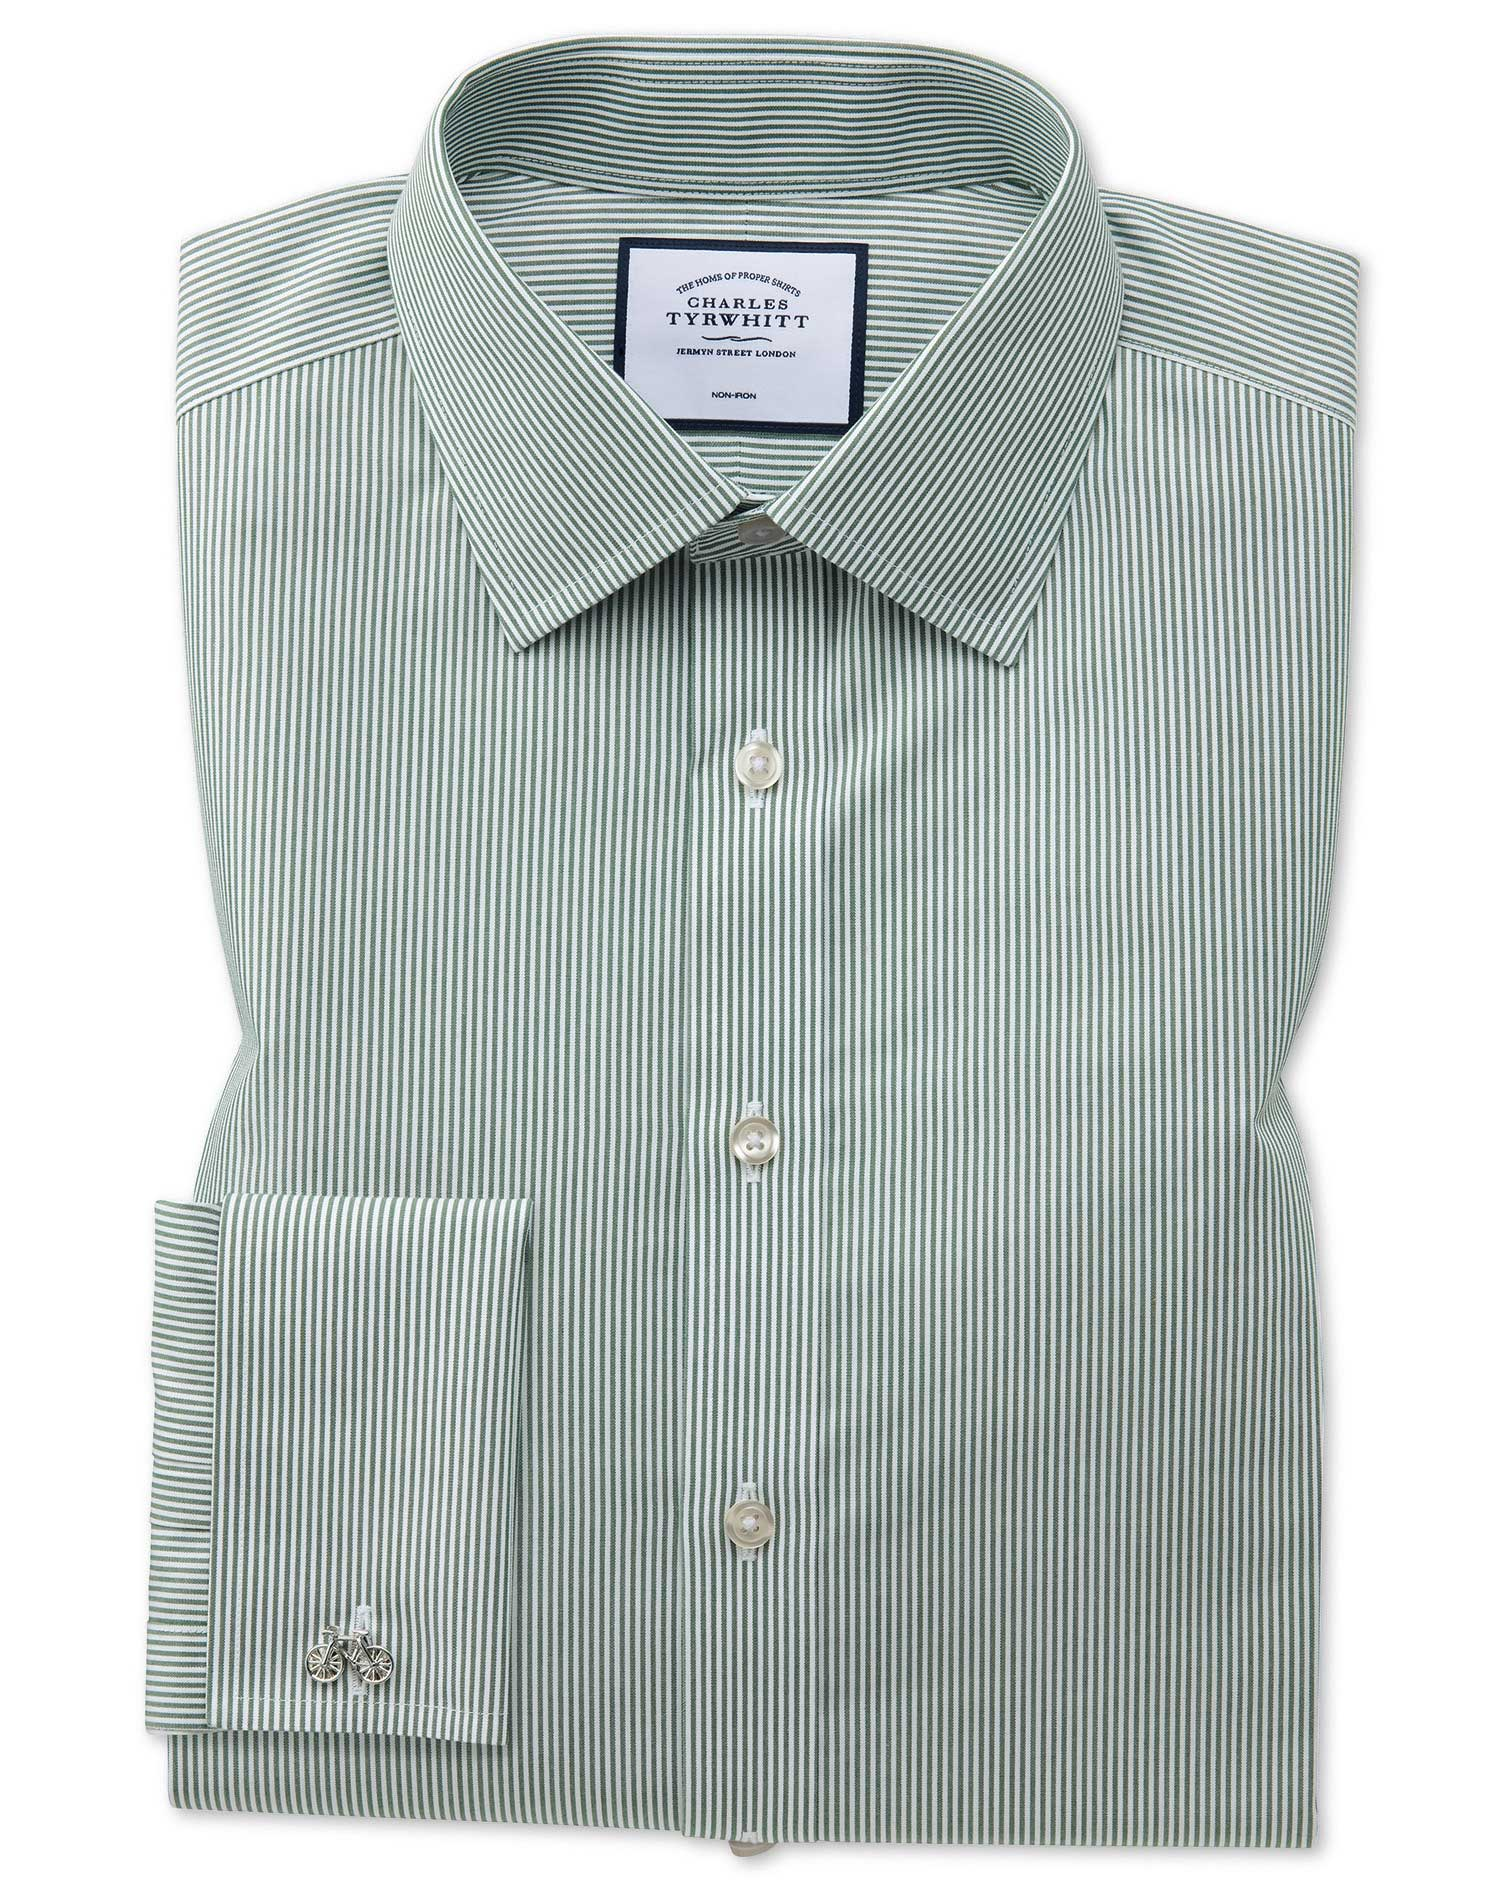 Classic Fit Non-Iron Olive Bengal Stripe Cotton Formal Shirt Double Cuff Size 18/38 by Charles Tyrwhitt from Charles Tyrwhitt